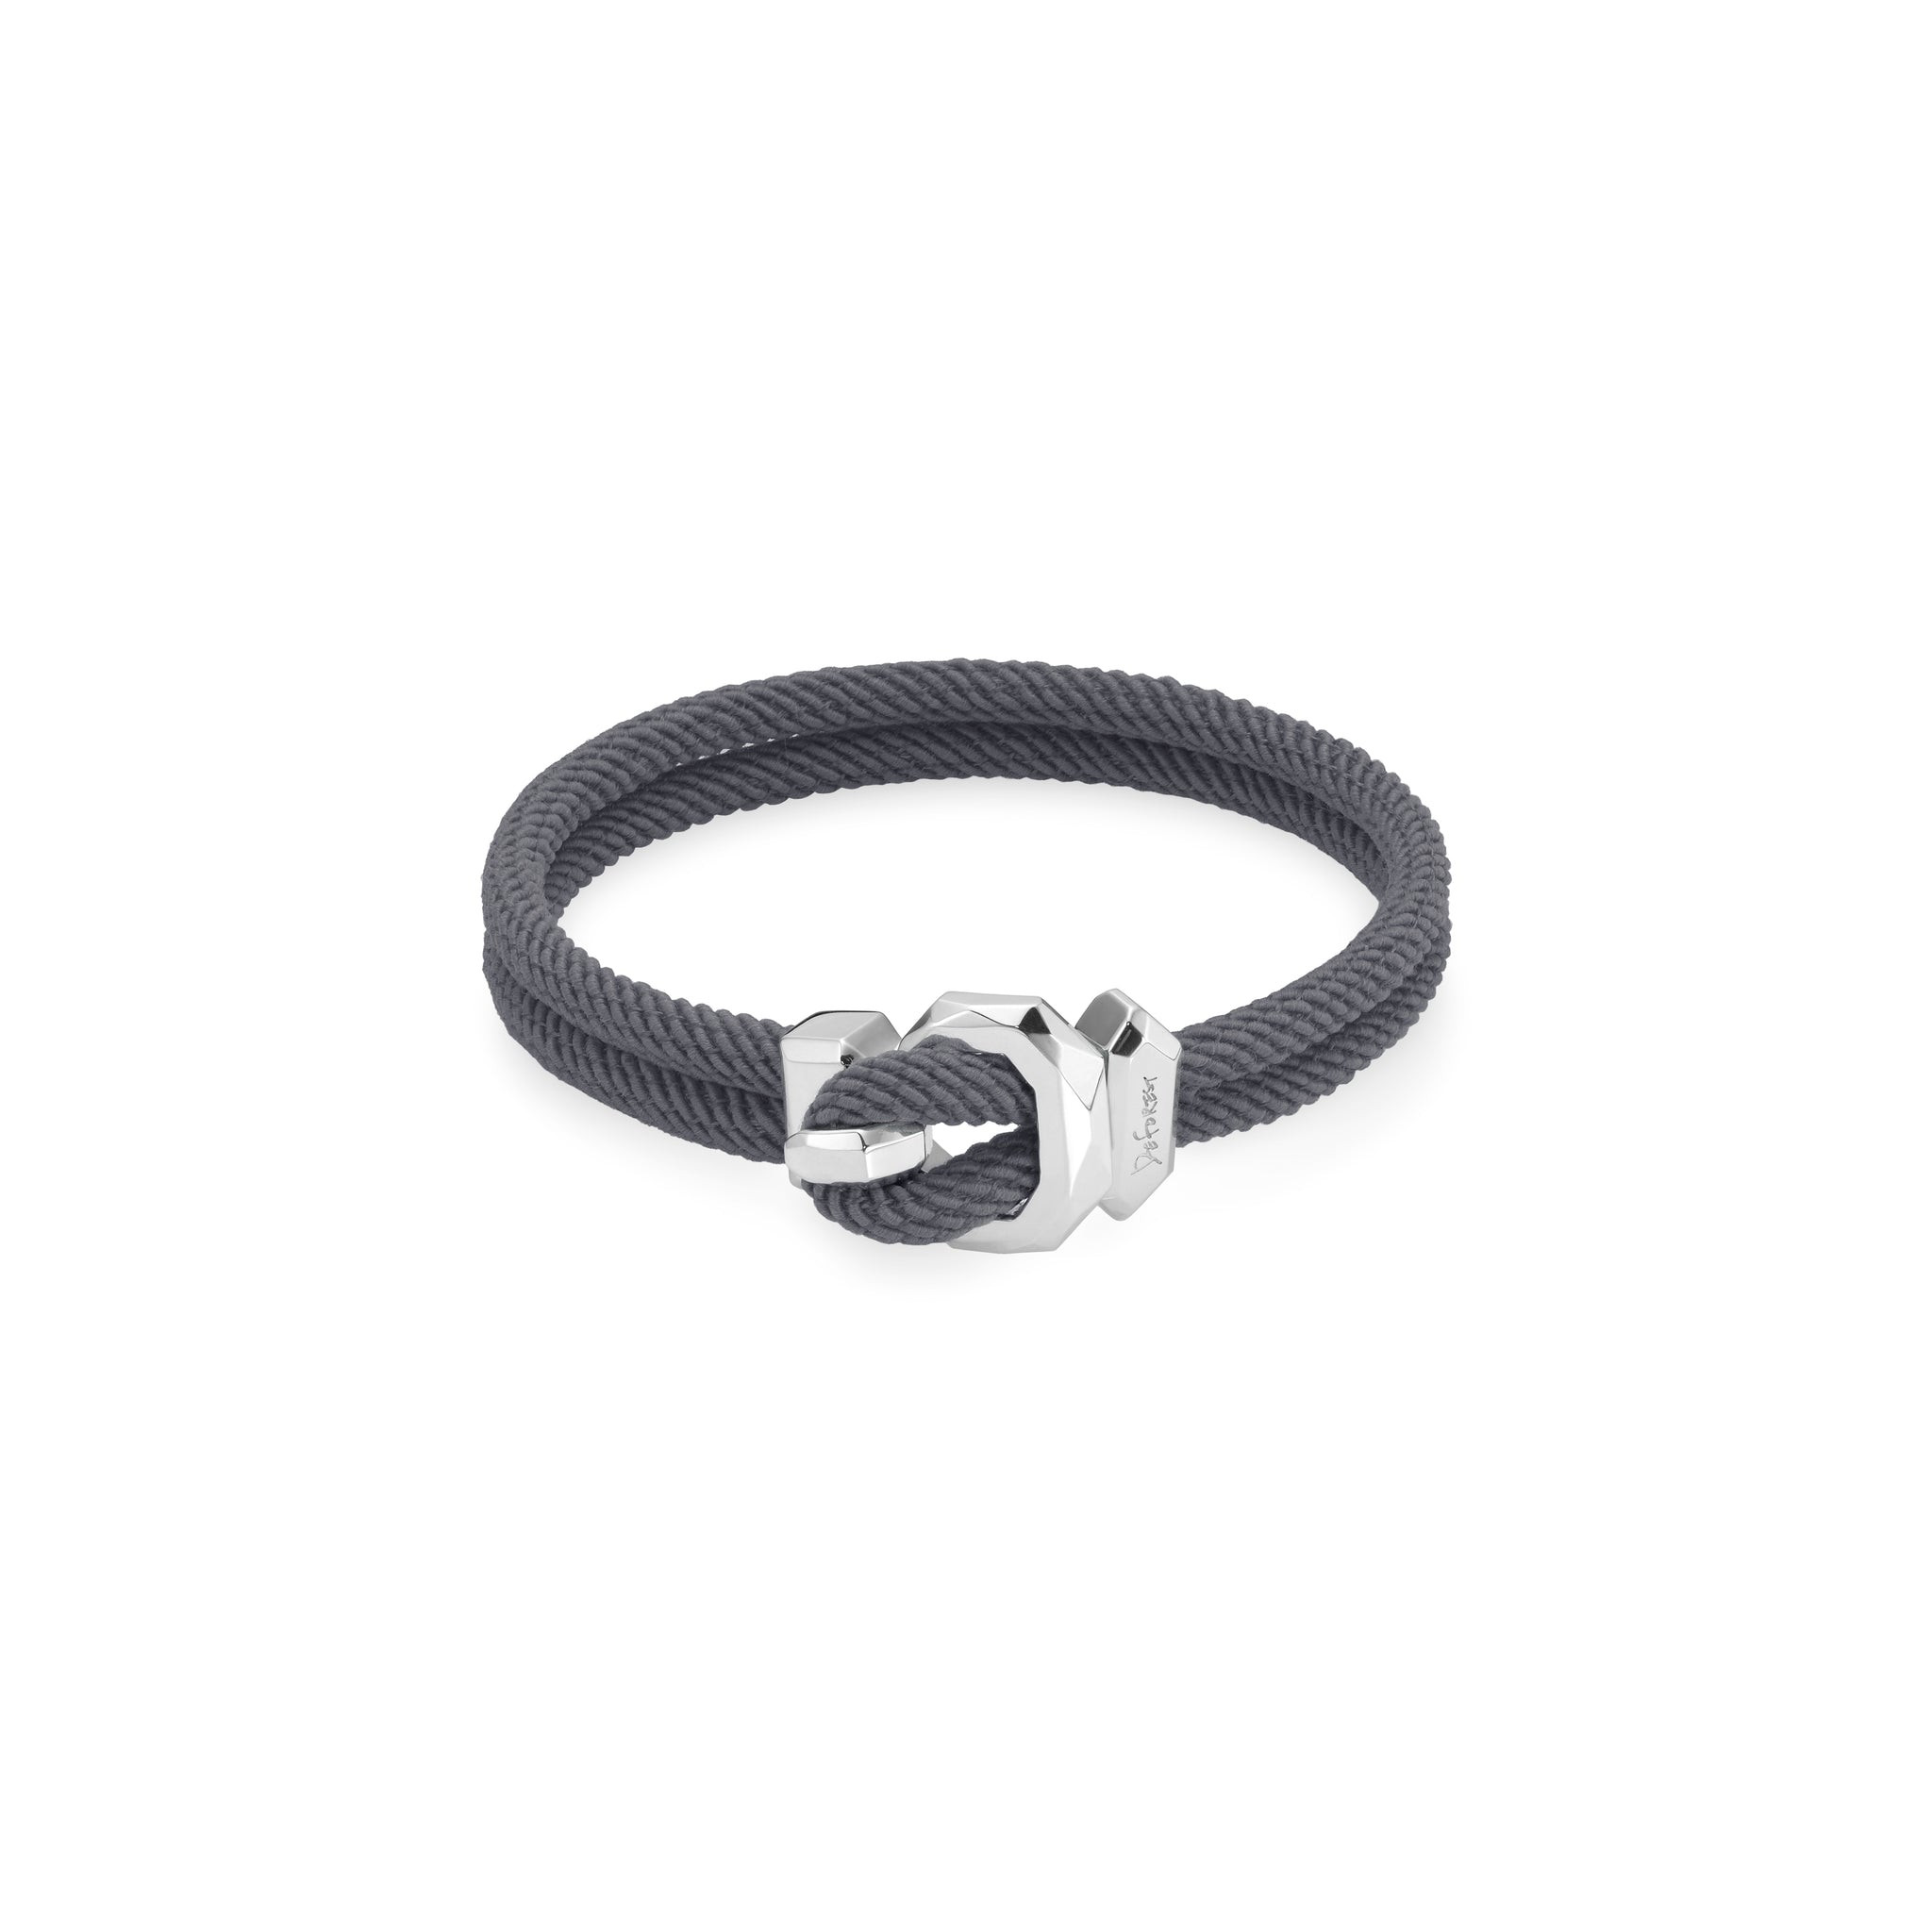 South Pole Silver Bracelet - GREY